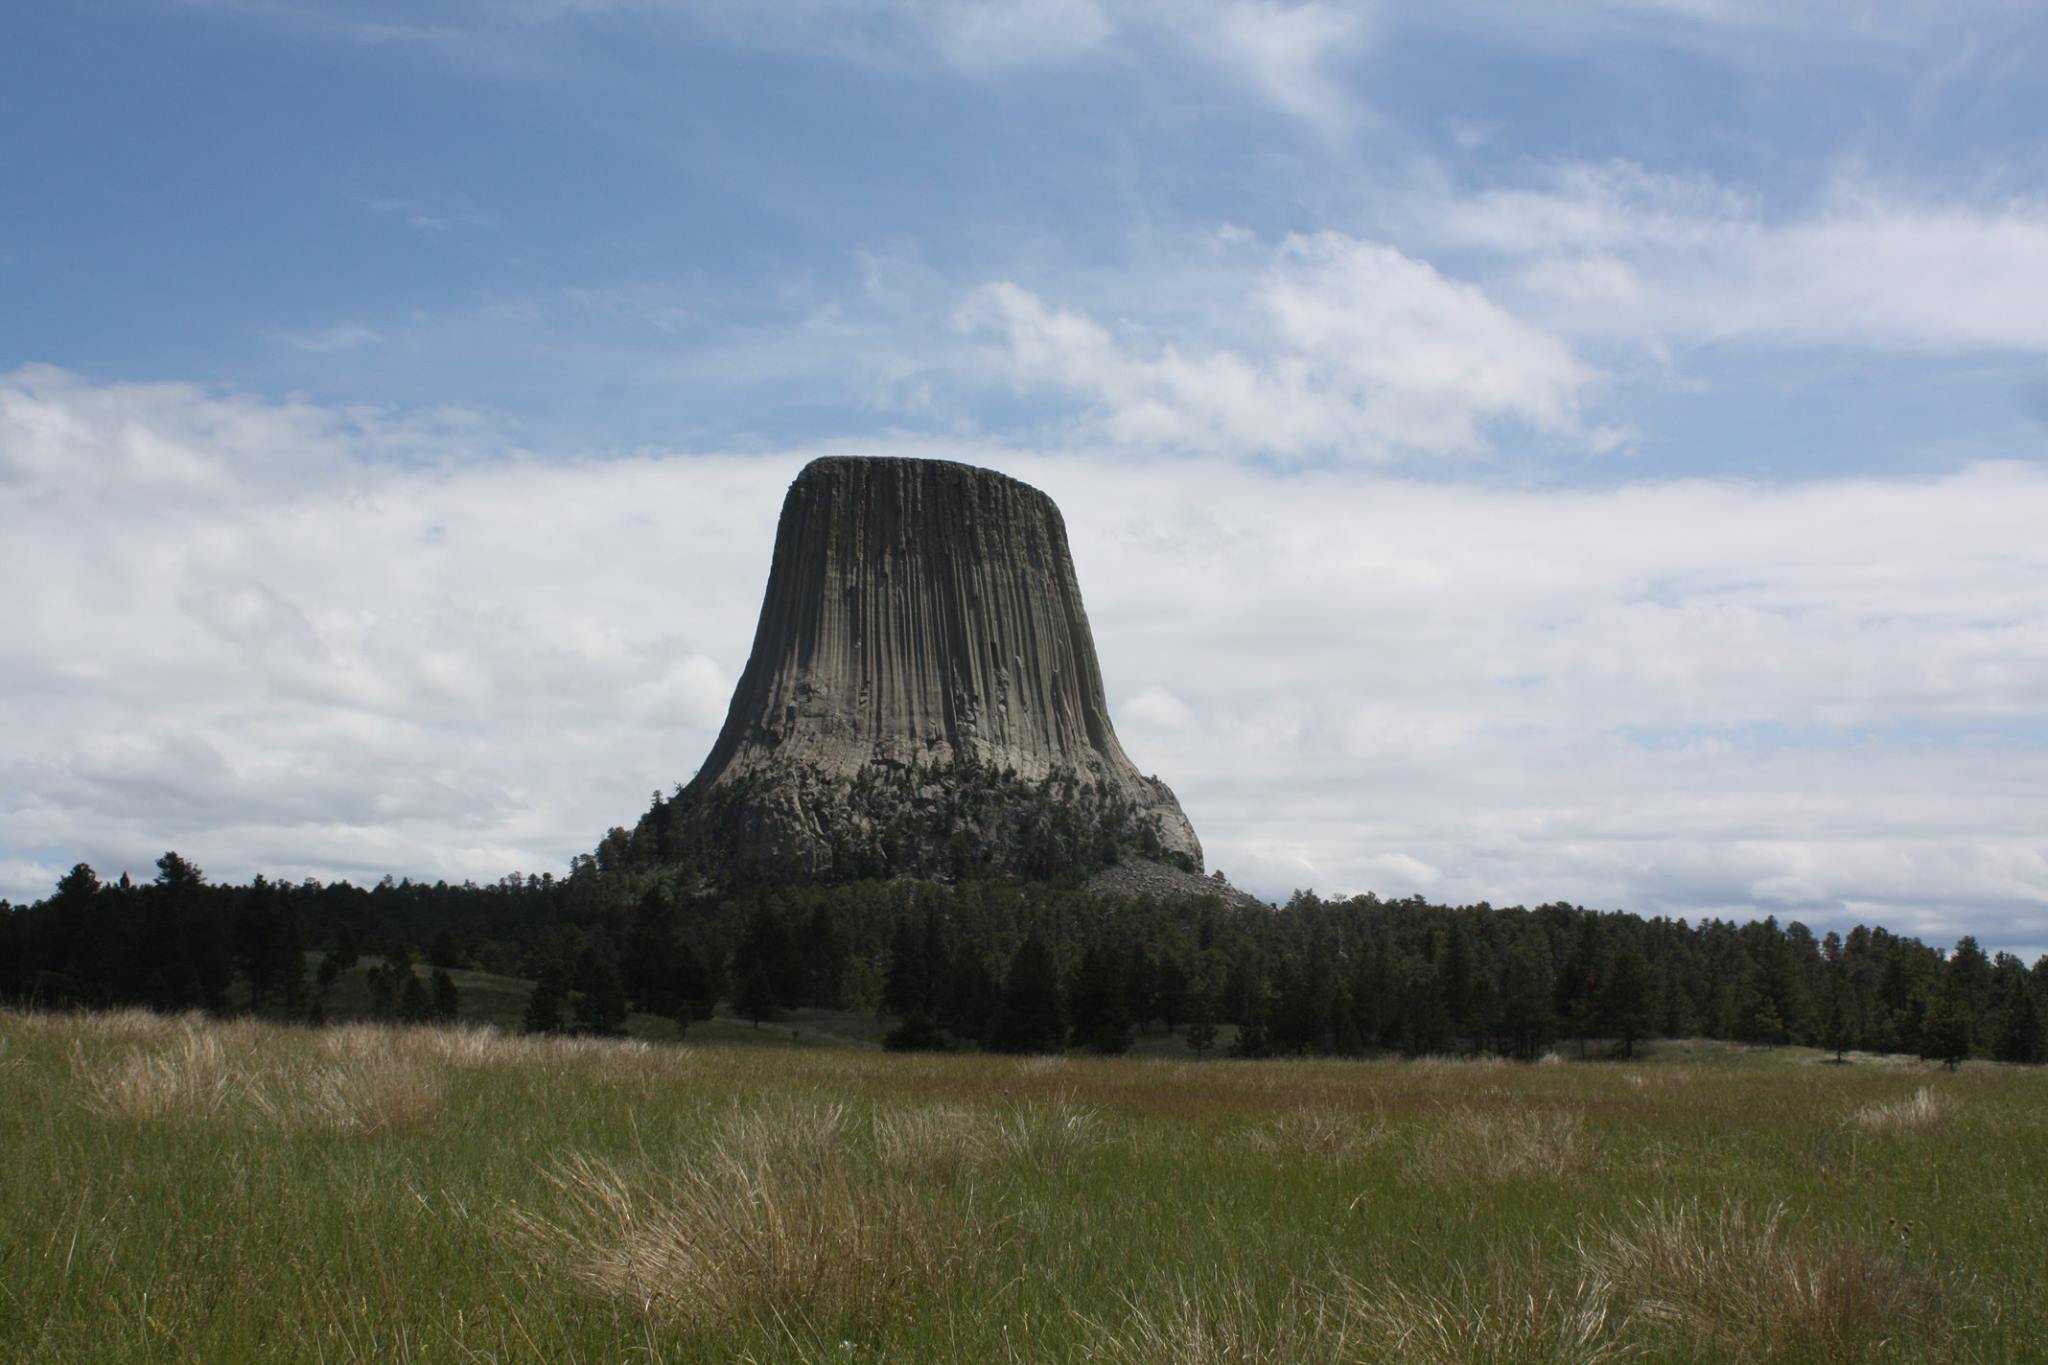 Comment sought on potential change to  name of Devils Tower